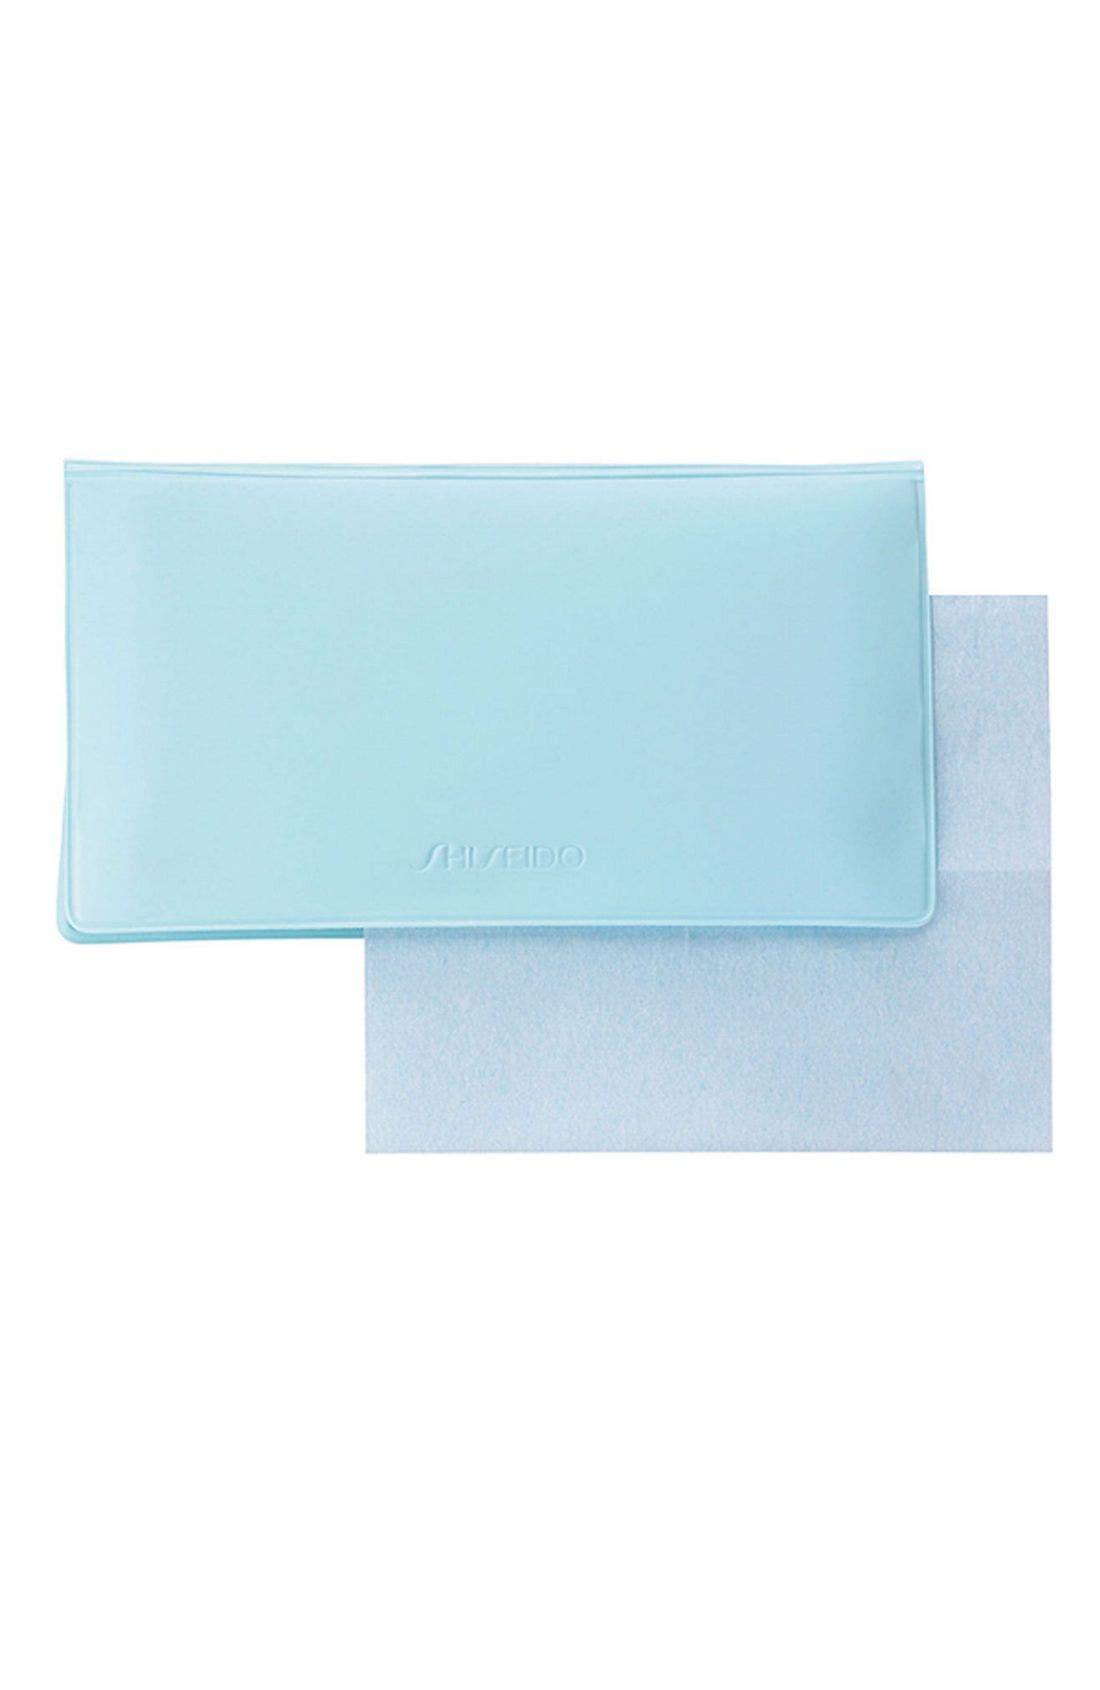 'Pureness' Oil-Control Blotting Paper,                             Main thumbnail 1, color,                             000